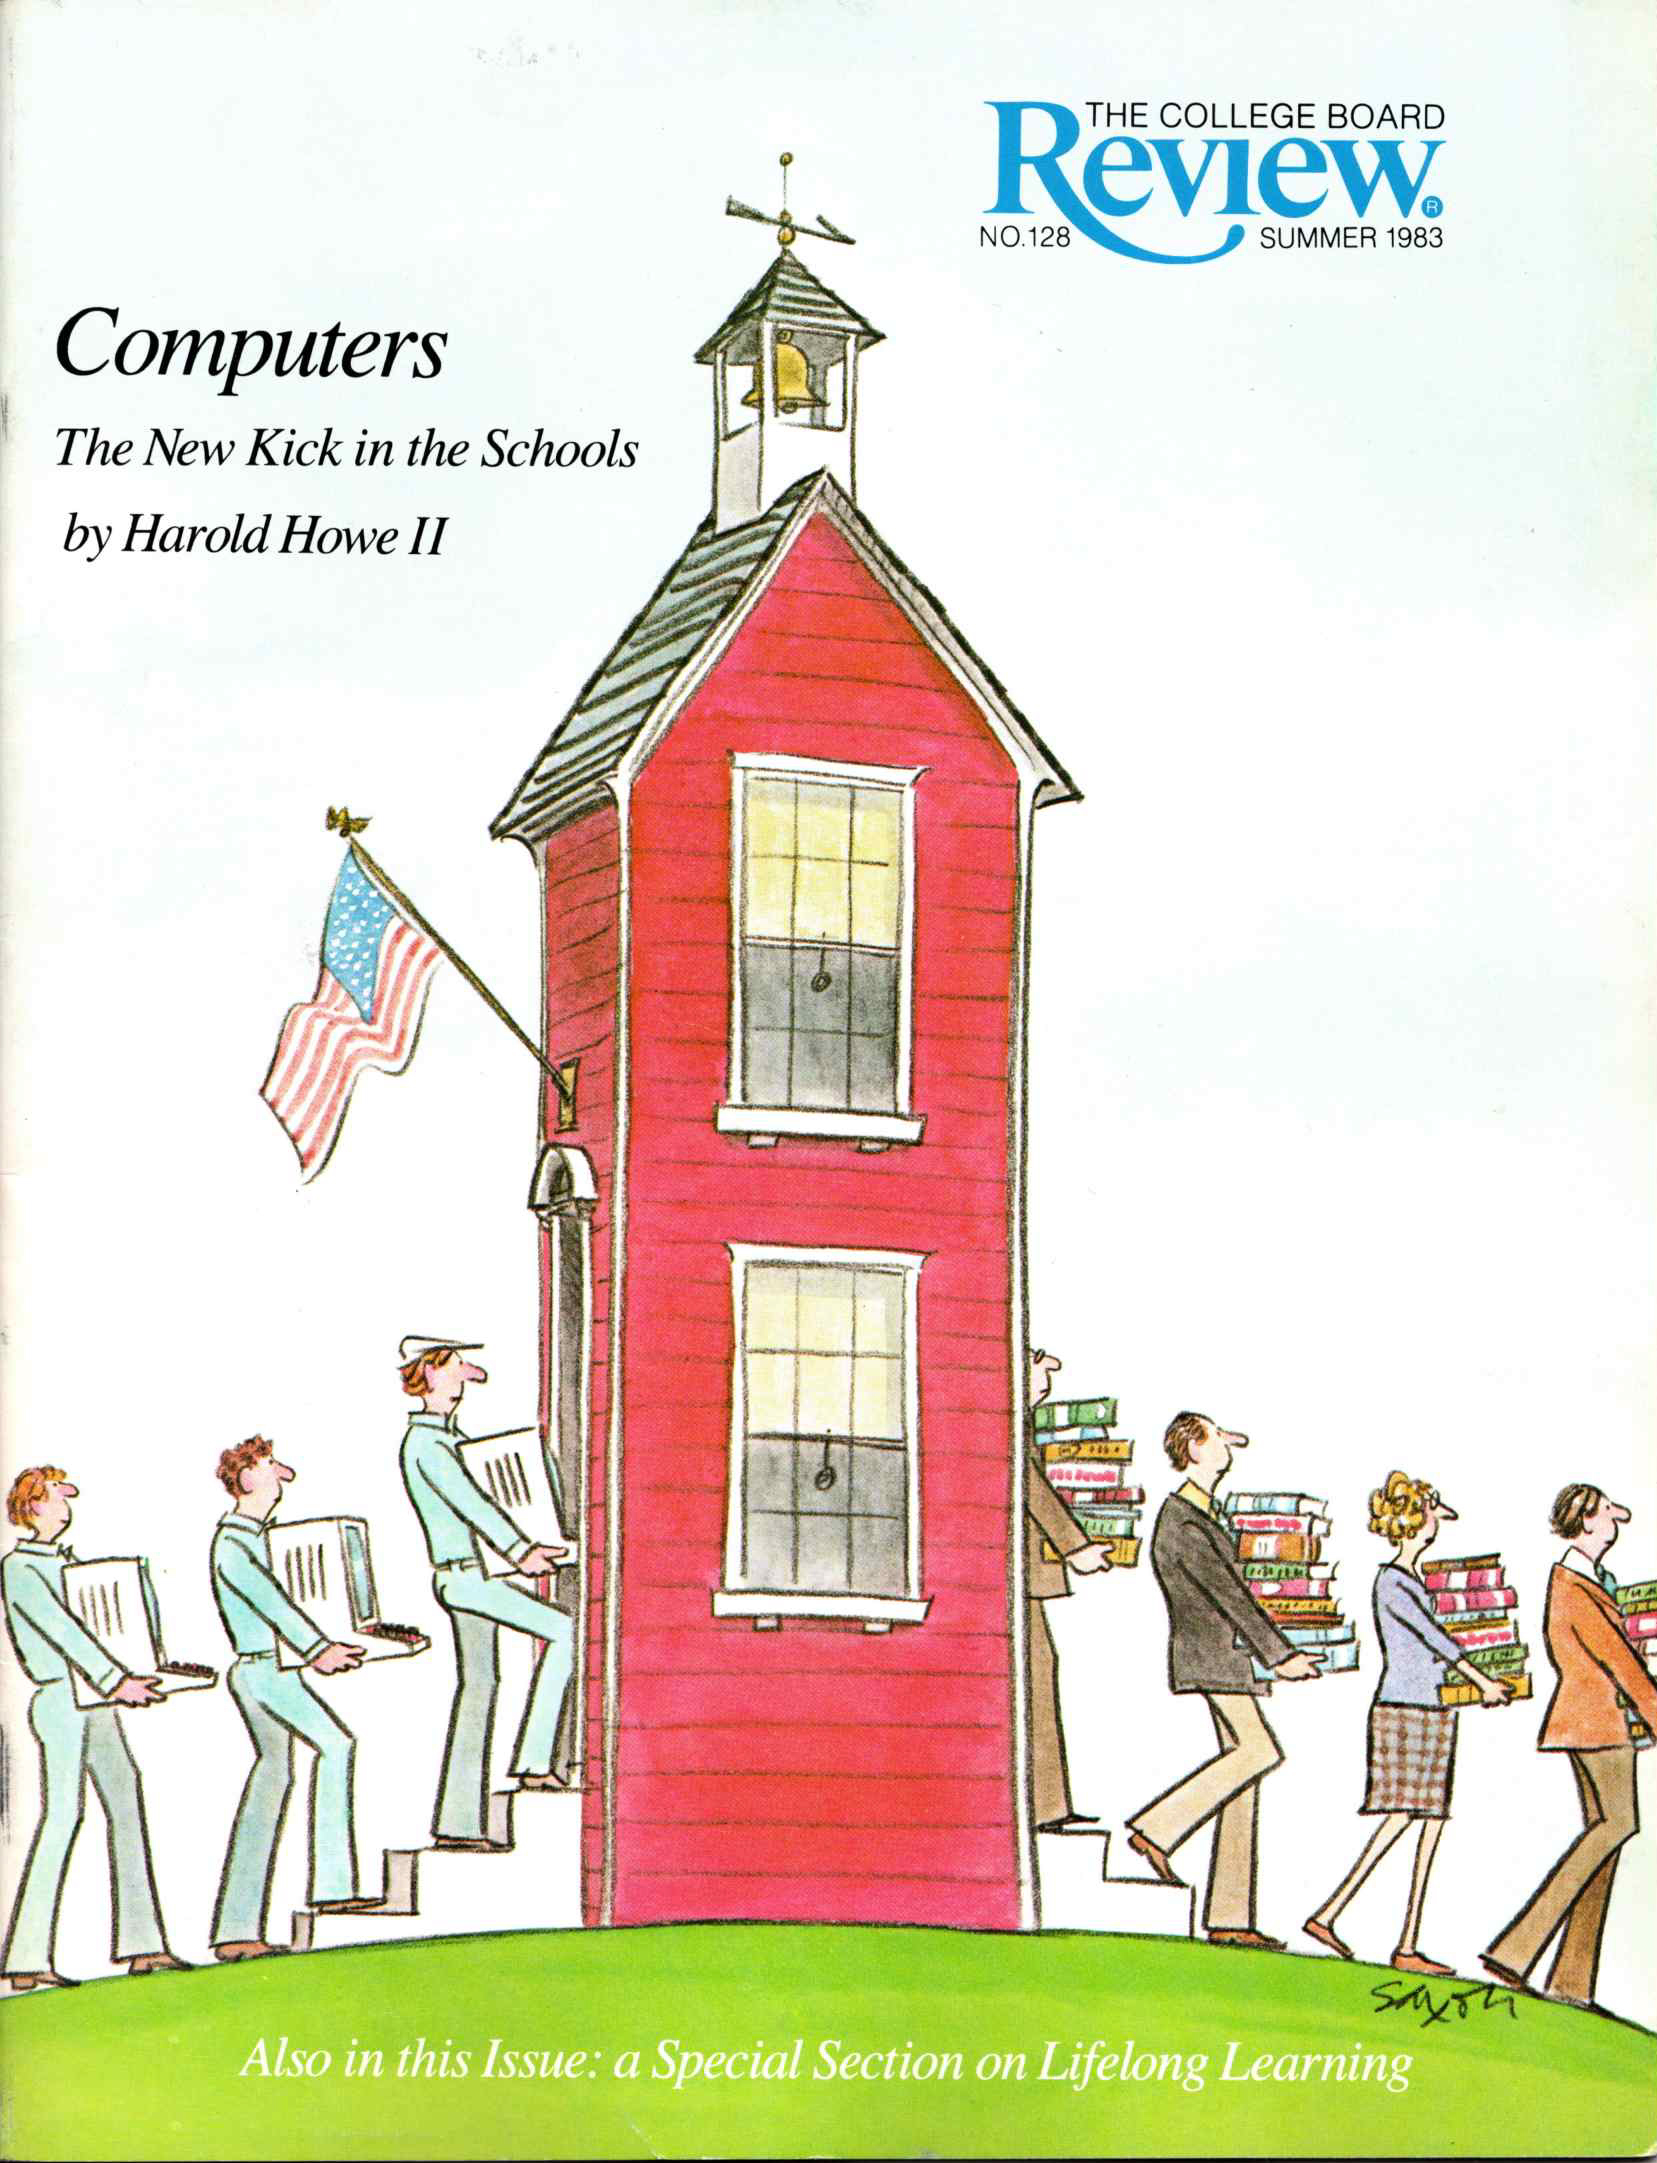 an illustration of people walking into a school carrying bulky computers and walking out with a stack of books